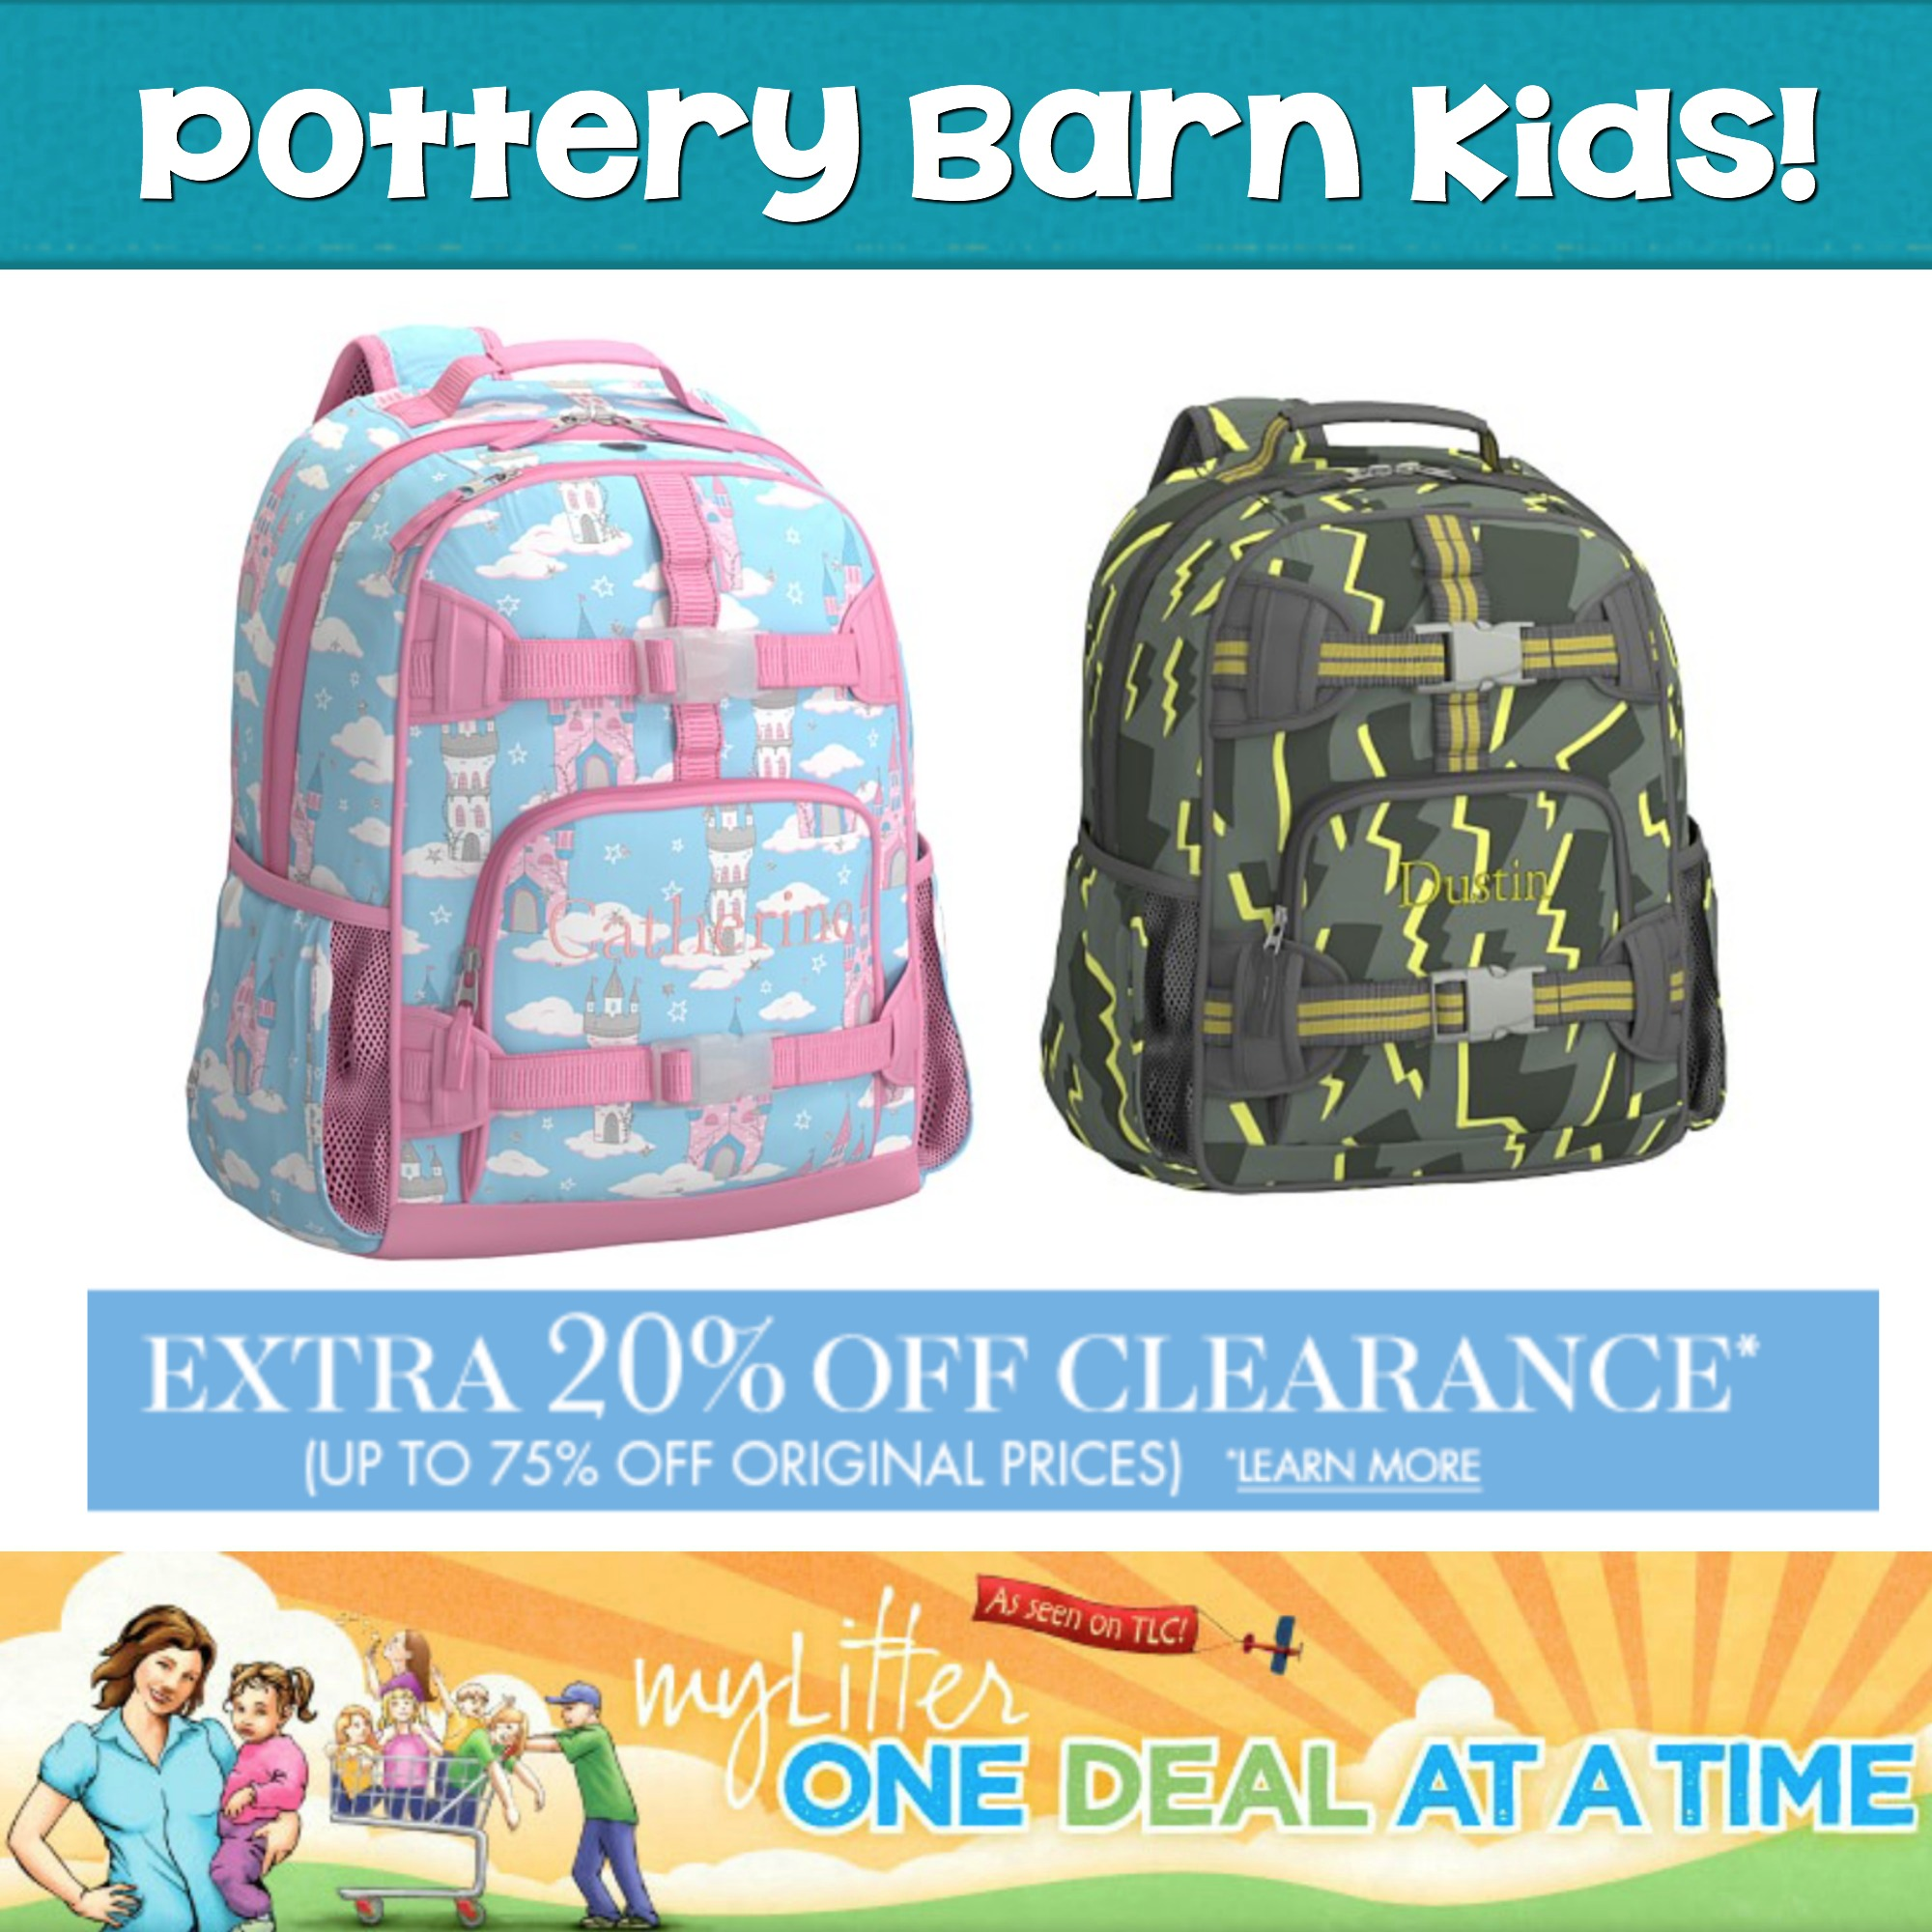 Pottery Barn Kids 20% off CLEARANCE items! - MyLitter - One Deal At A Time.  ` 19dab2b2cdd70